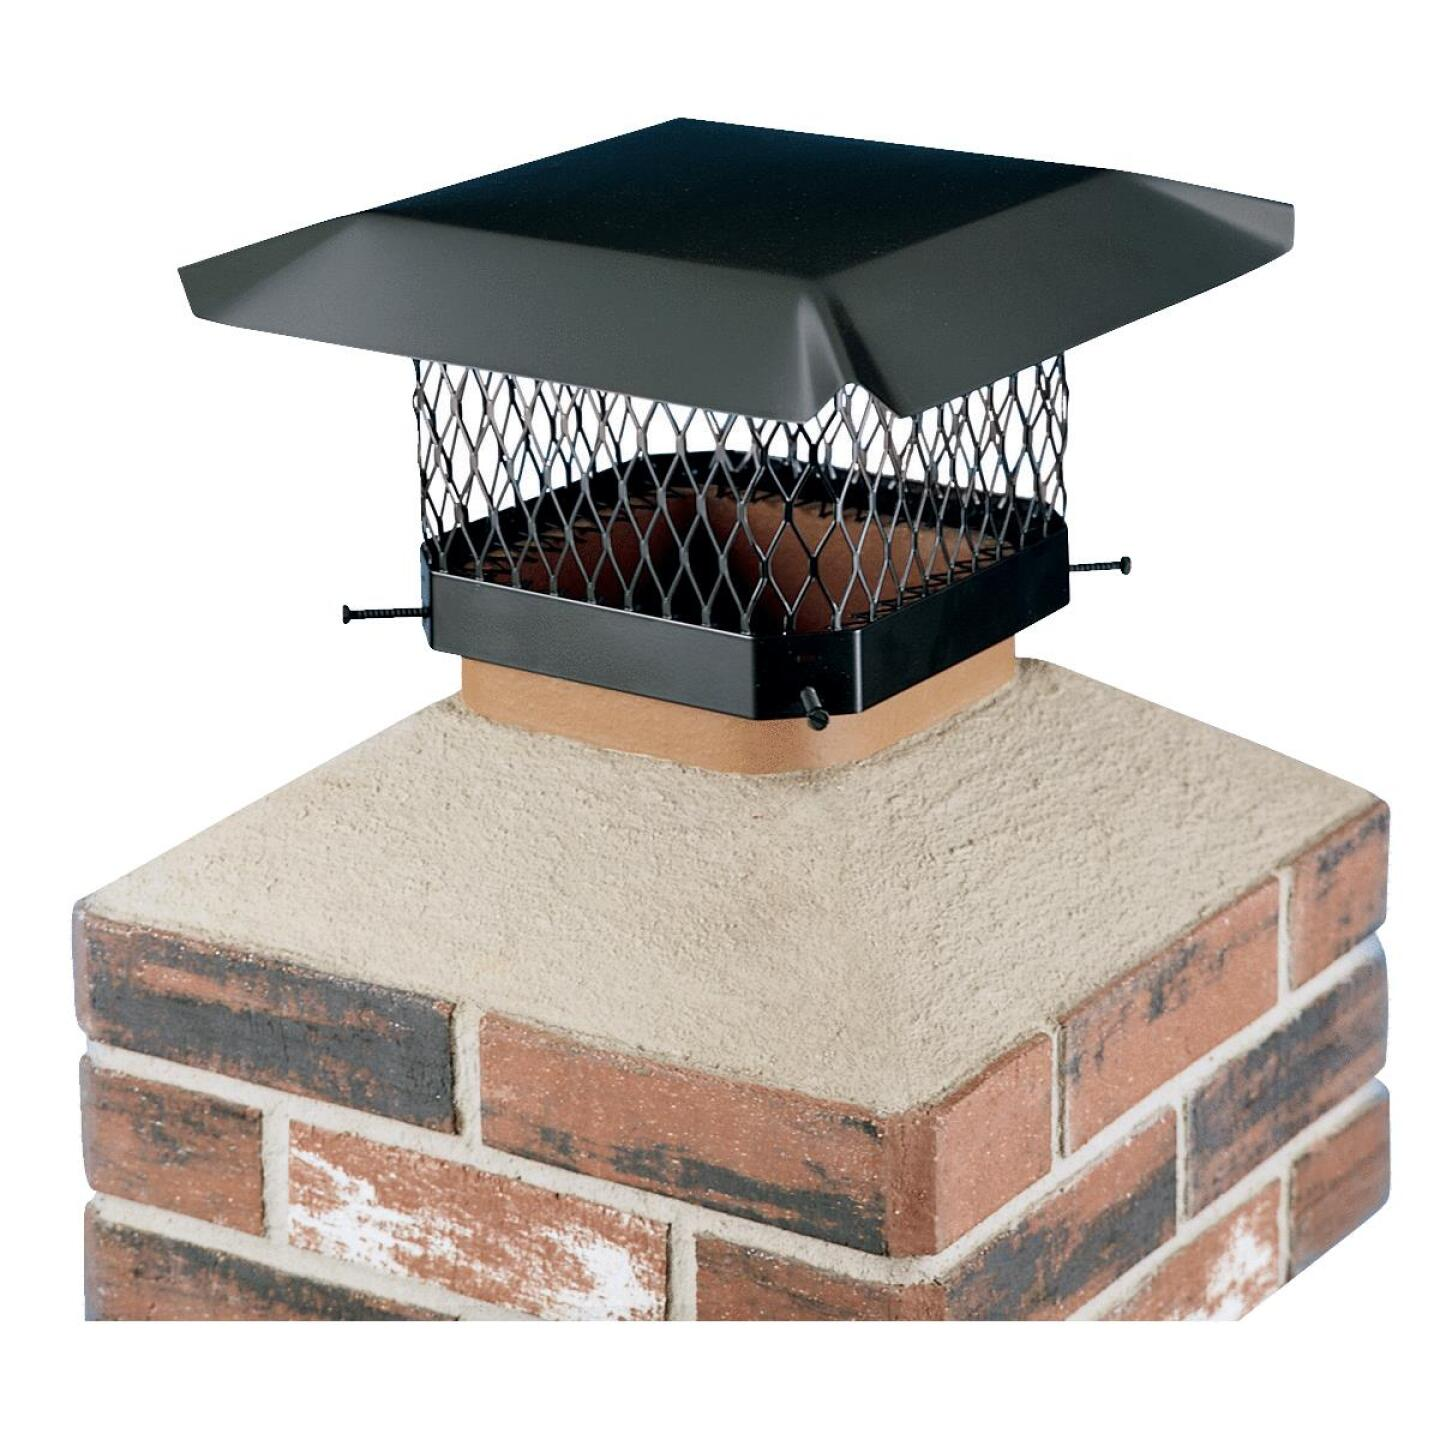 Shelter 13 In. x 13 In. Black Galvanized Steel Chimney Cap Image 1